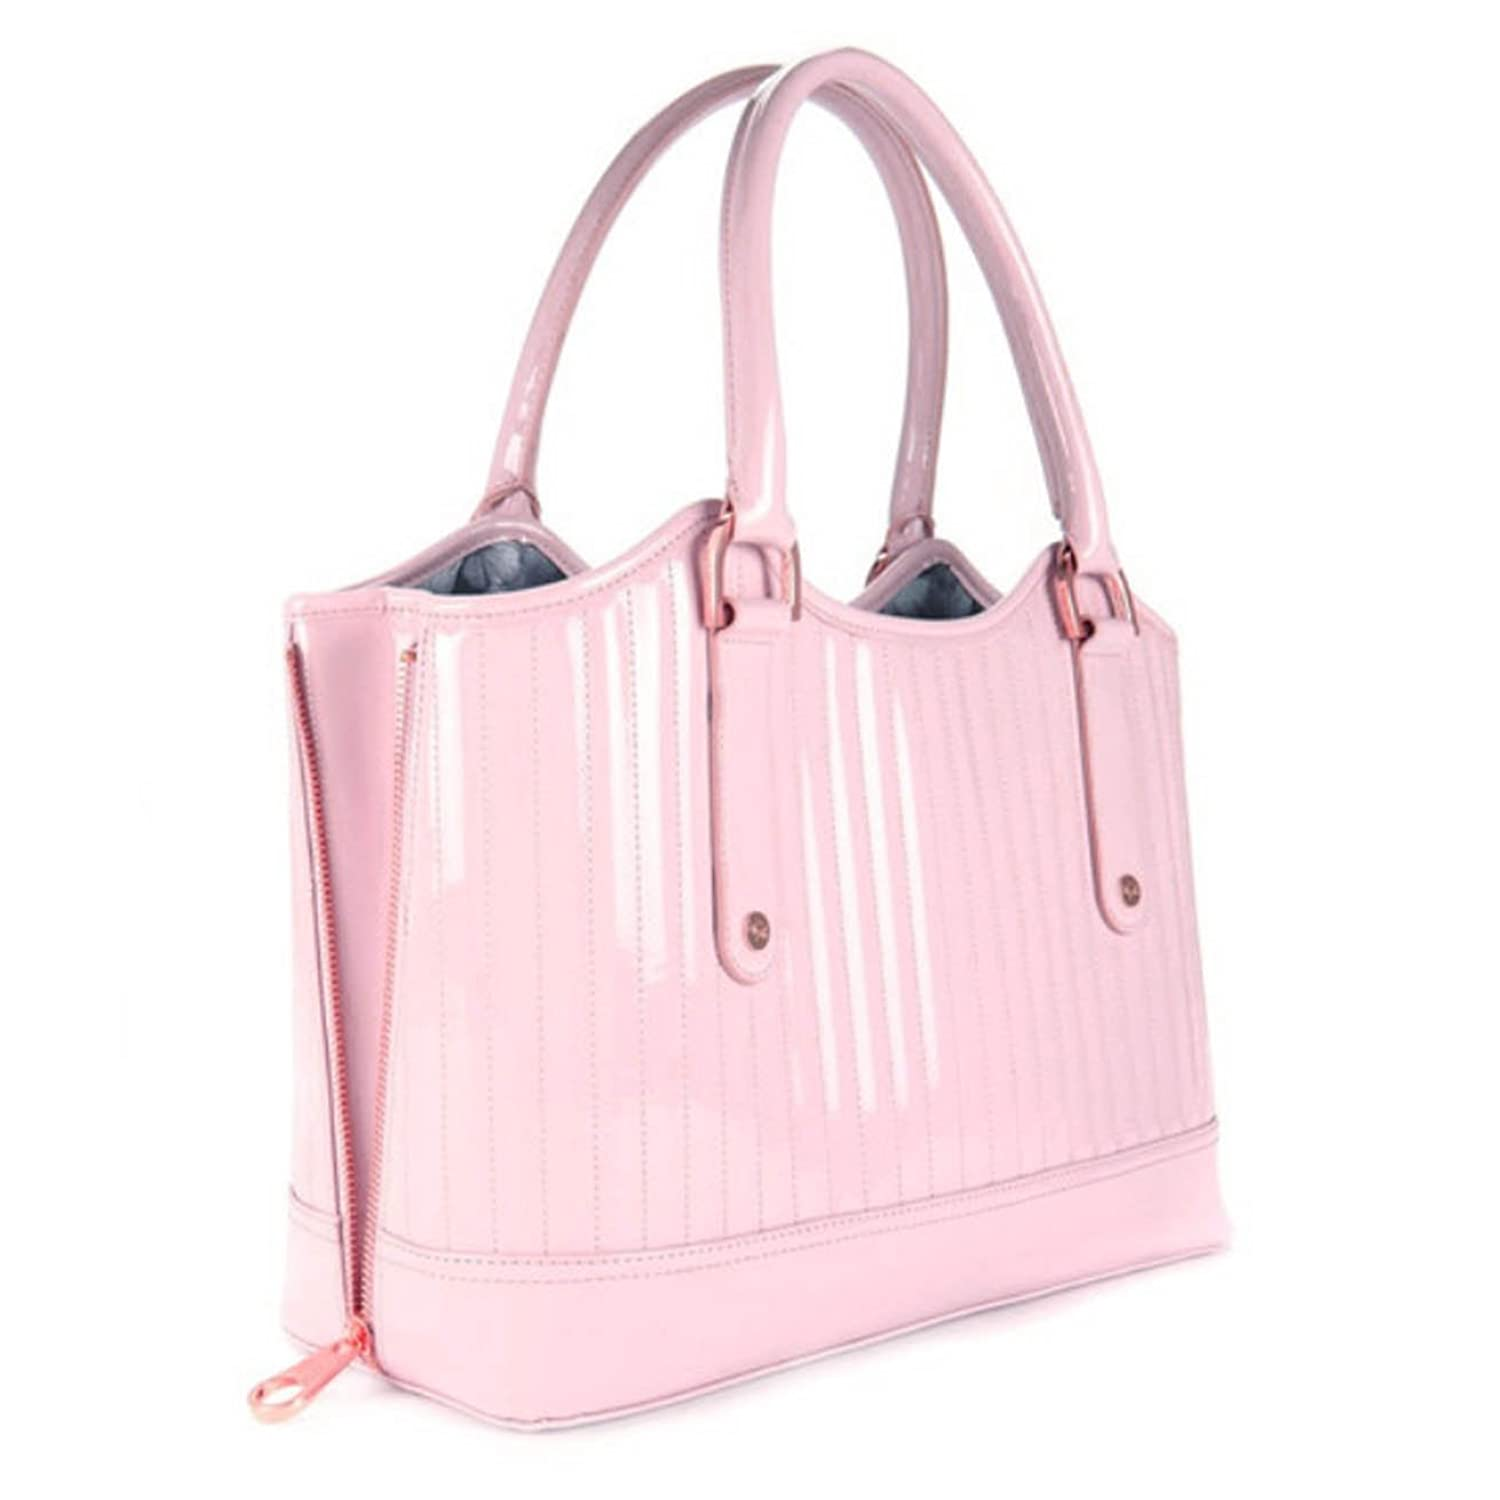 Ted Baker New Genuine Large Pale Pink Quilted Tote Bag Handbag - Perfect  Gift: Amazon.co.uk: Shoes & Bags